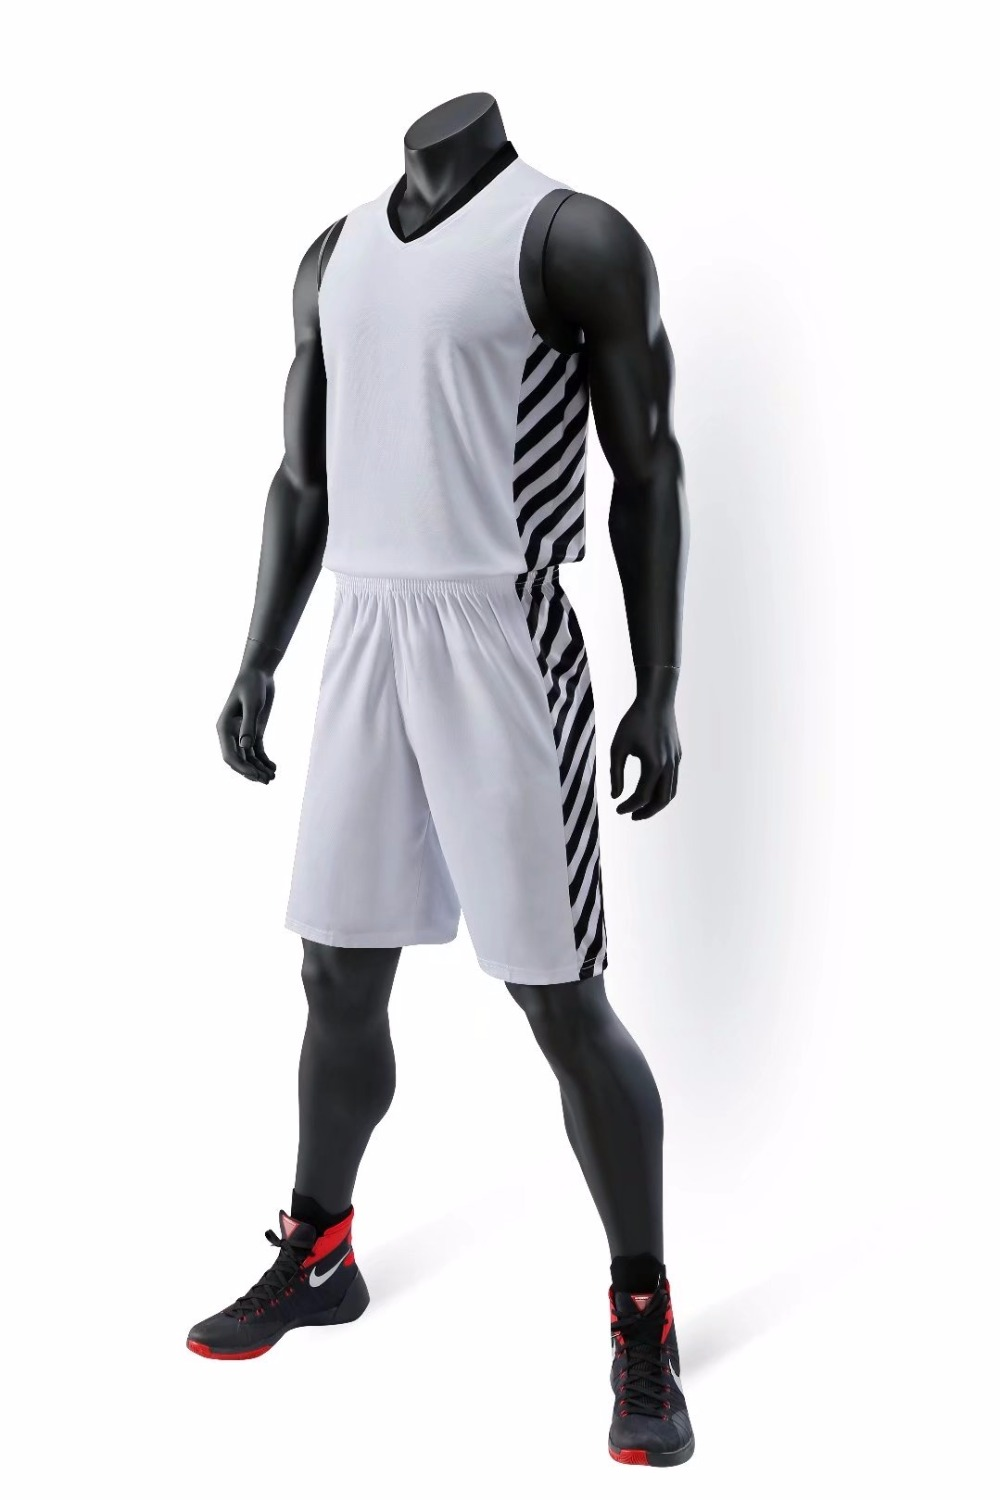 Men Cheap Throwback Basketball Jerseys Youth Blank striped Basketball Uniforms Breathable Training Sports Jerseys Sets L-5XL